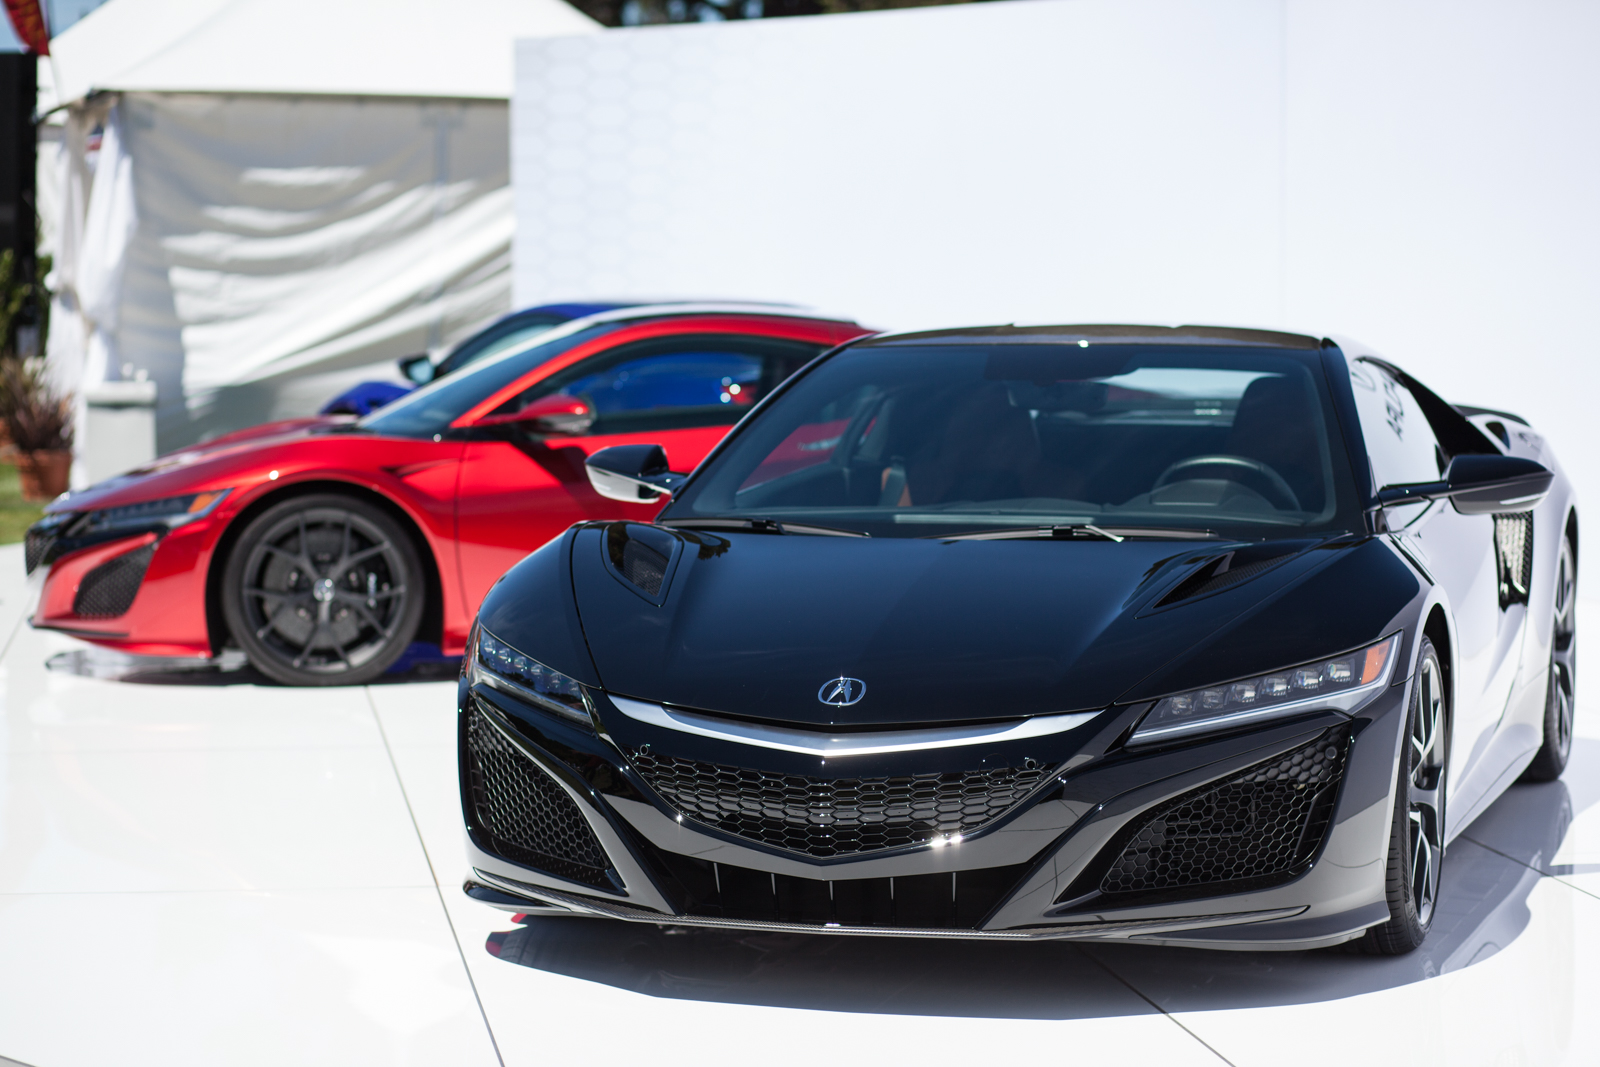 Acura Nsx Looks Just As Stunning In Blue And Black